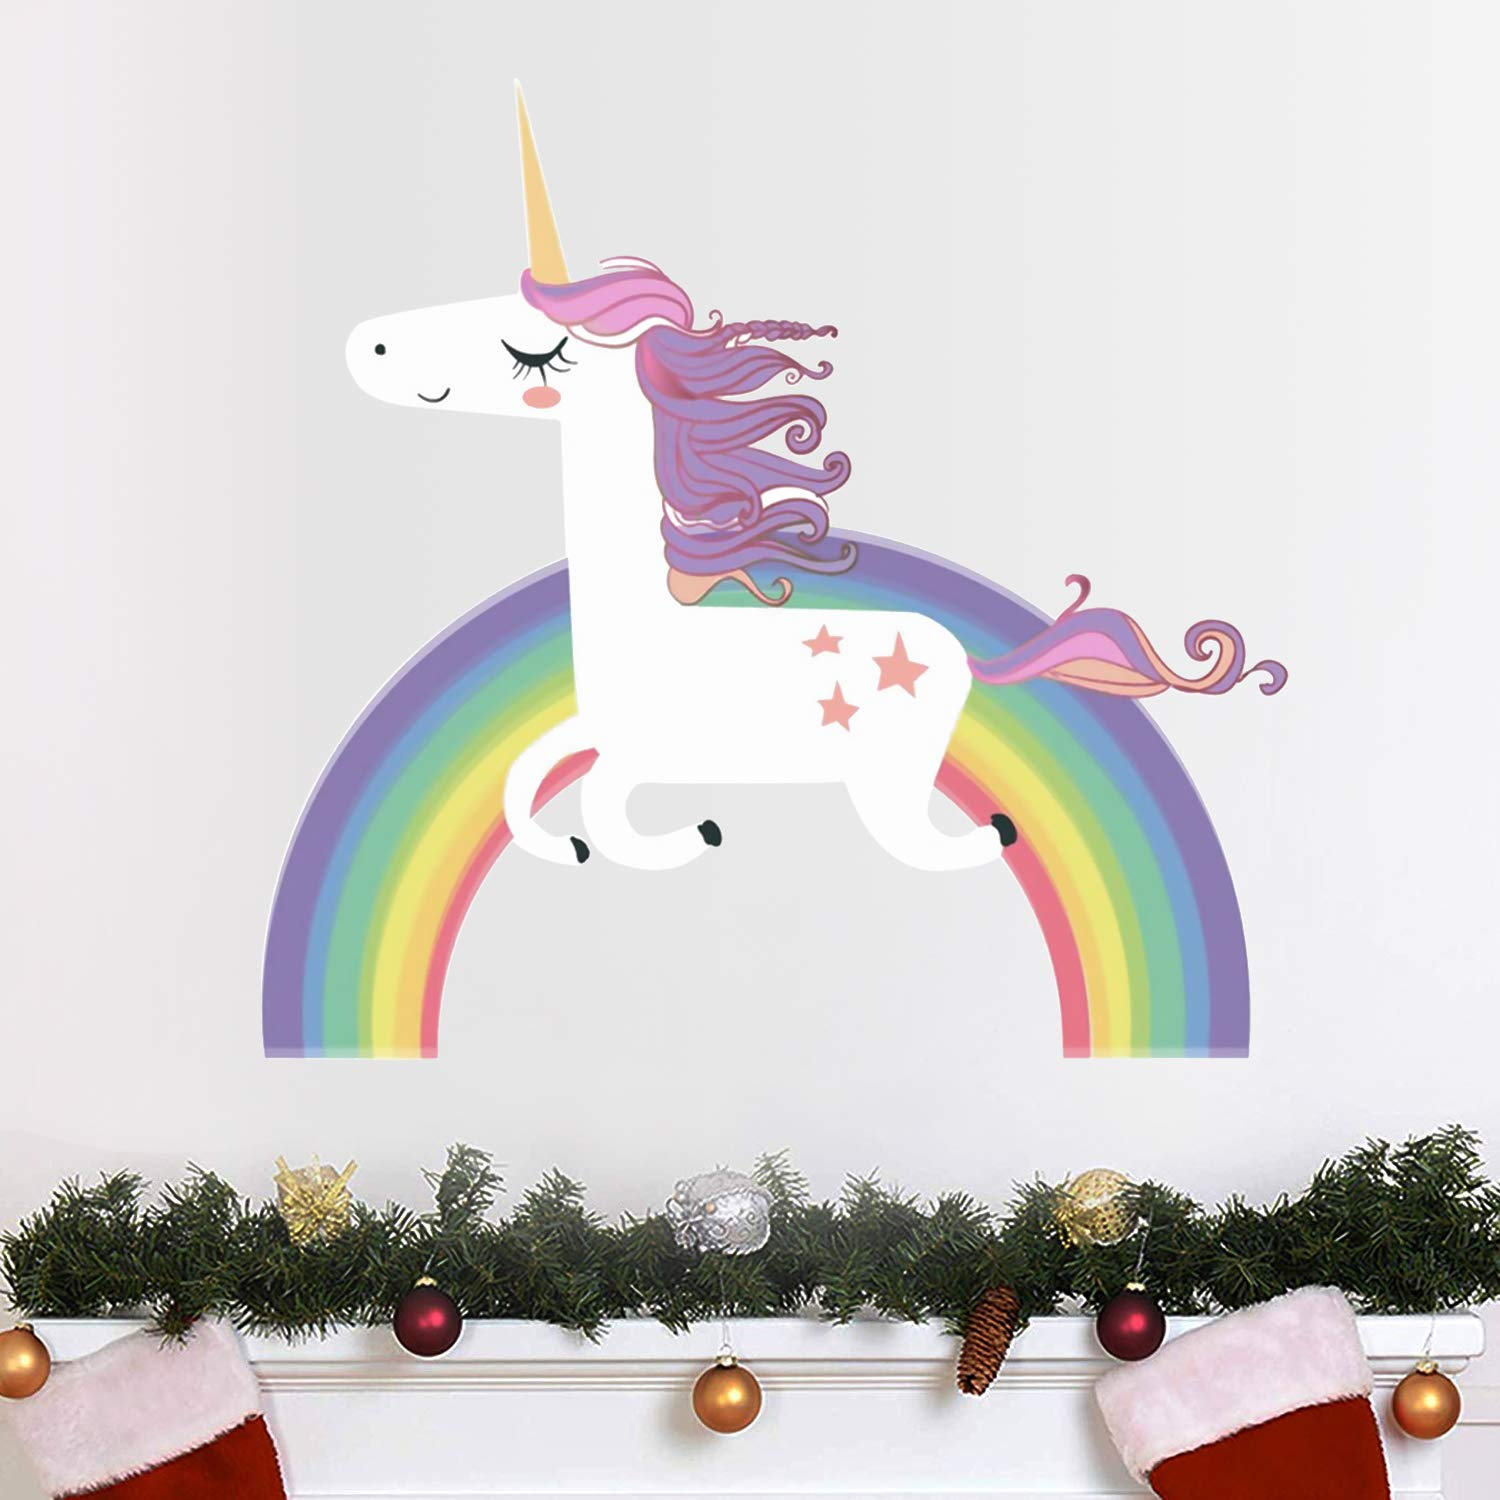 Vinilo Decorativo Pared [7L8S4N4K] unicornio